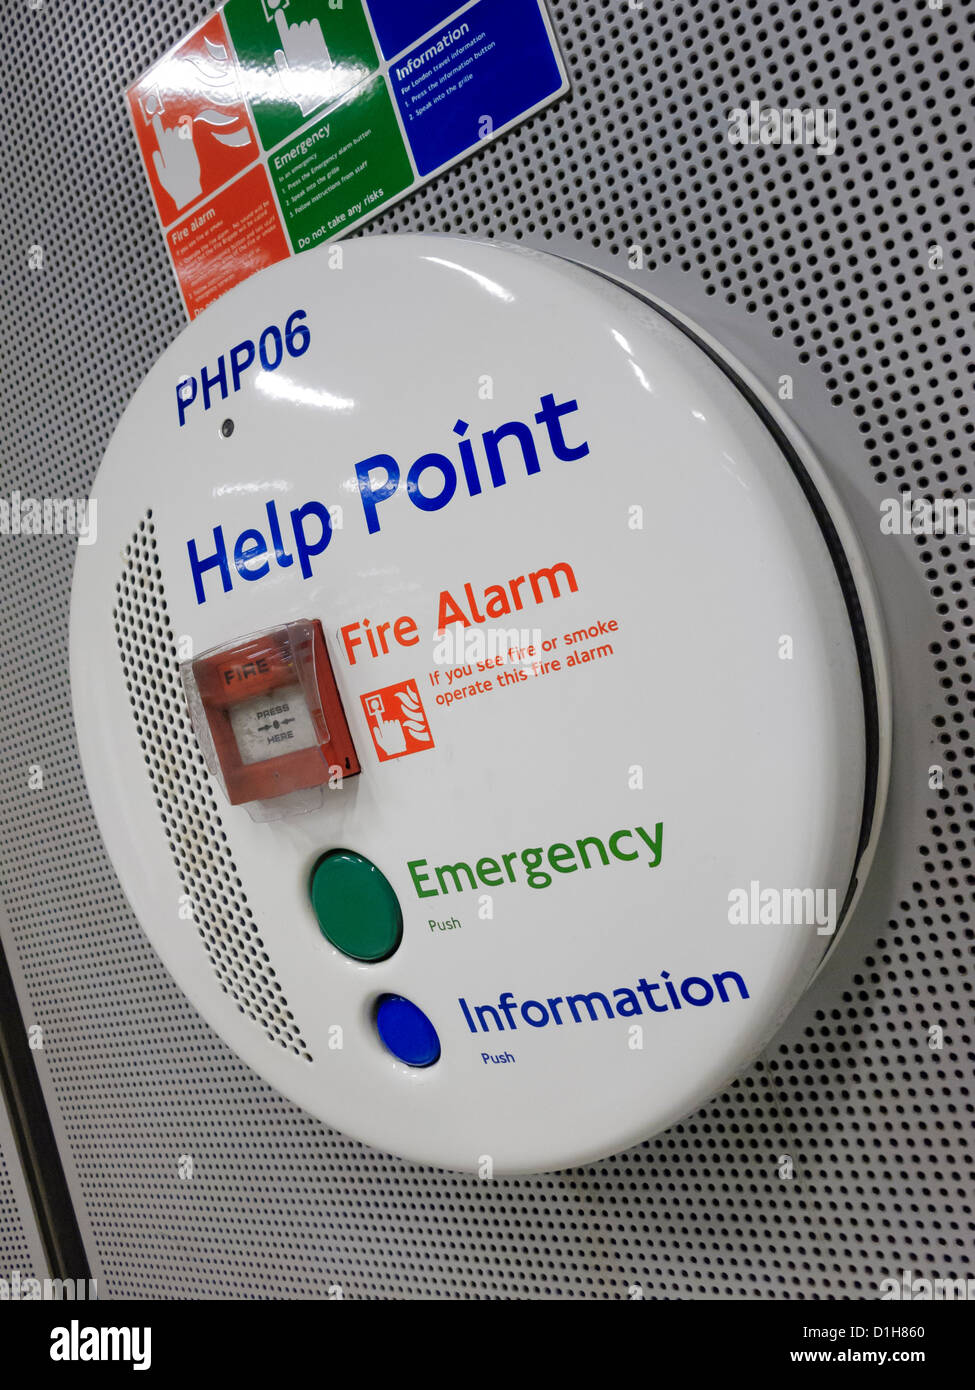 Information Sign Help Point Fire Alarm Emergency - Stock Image